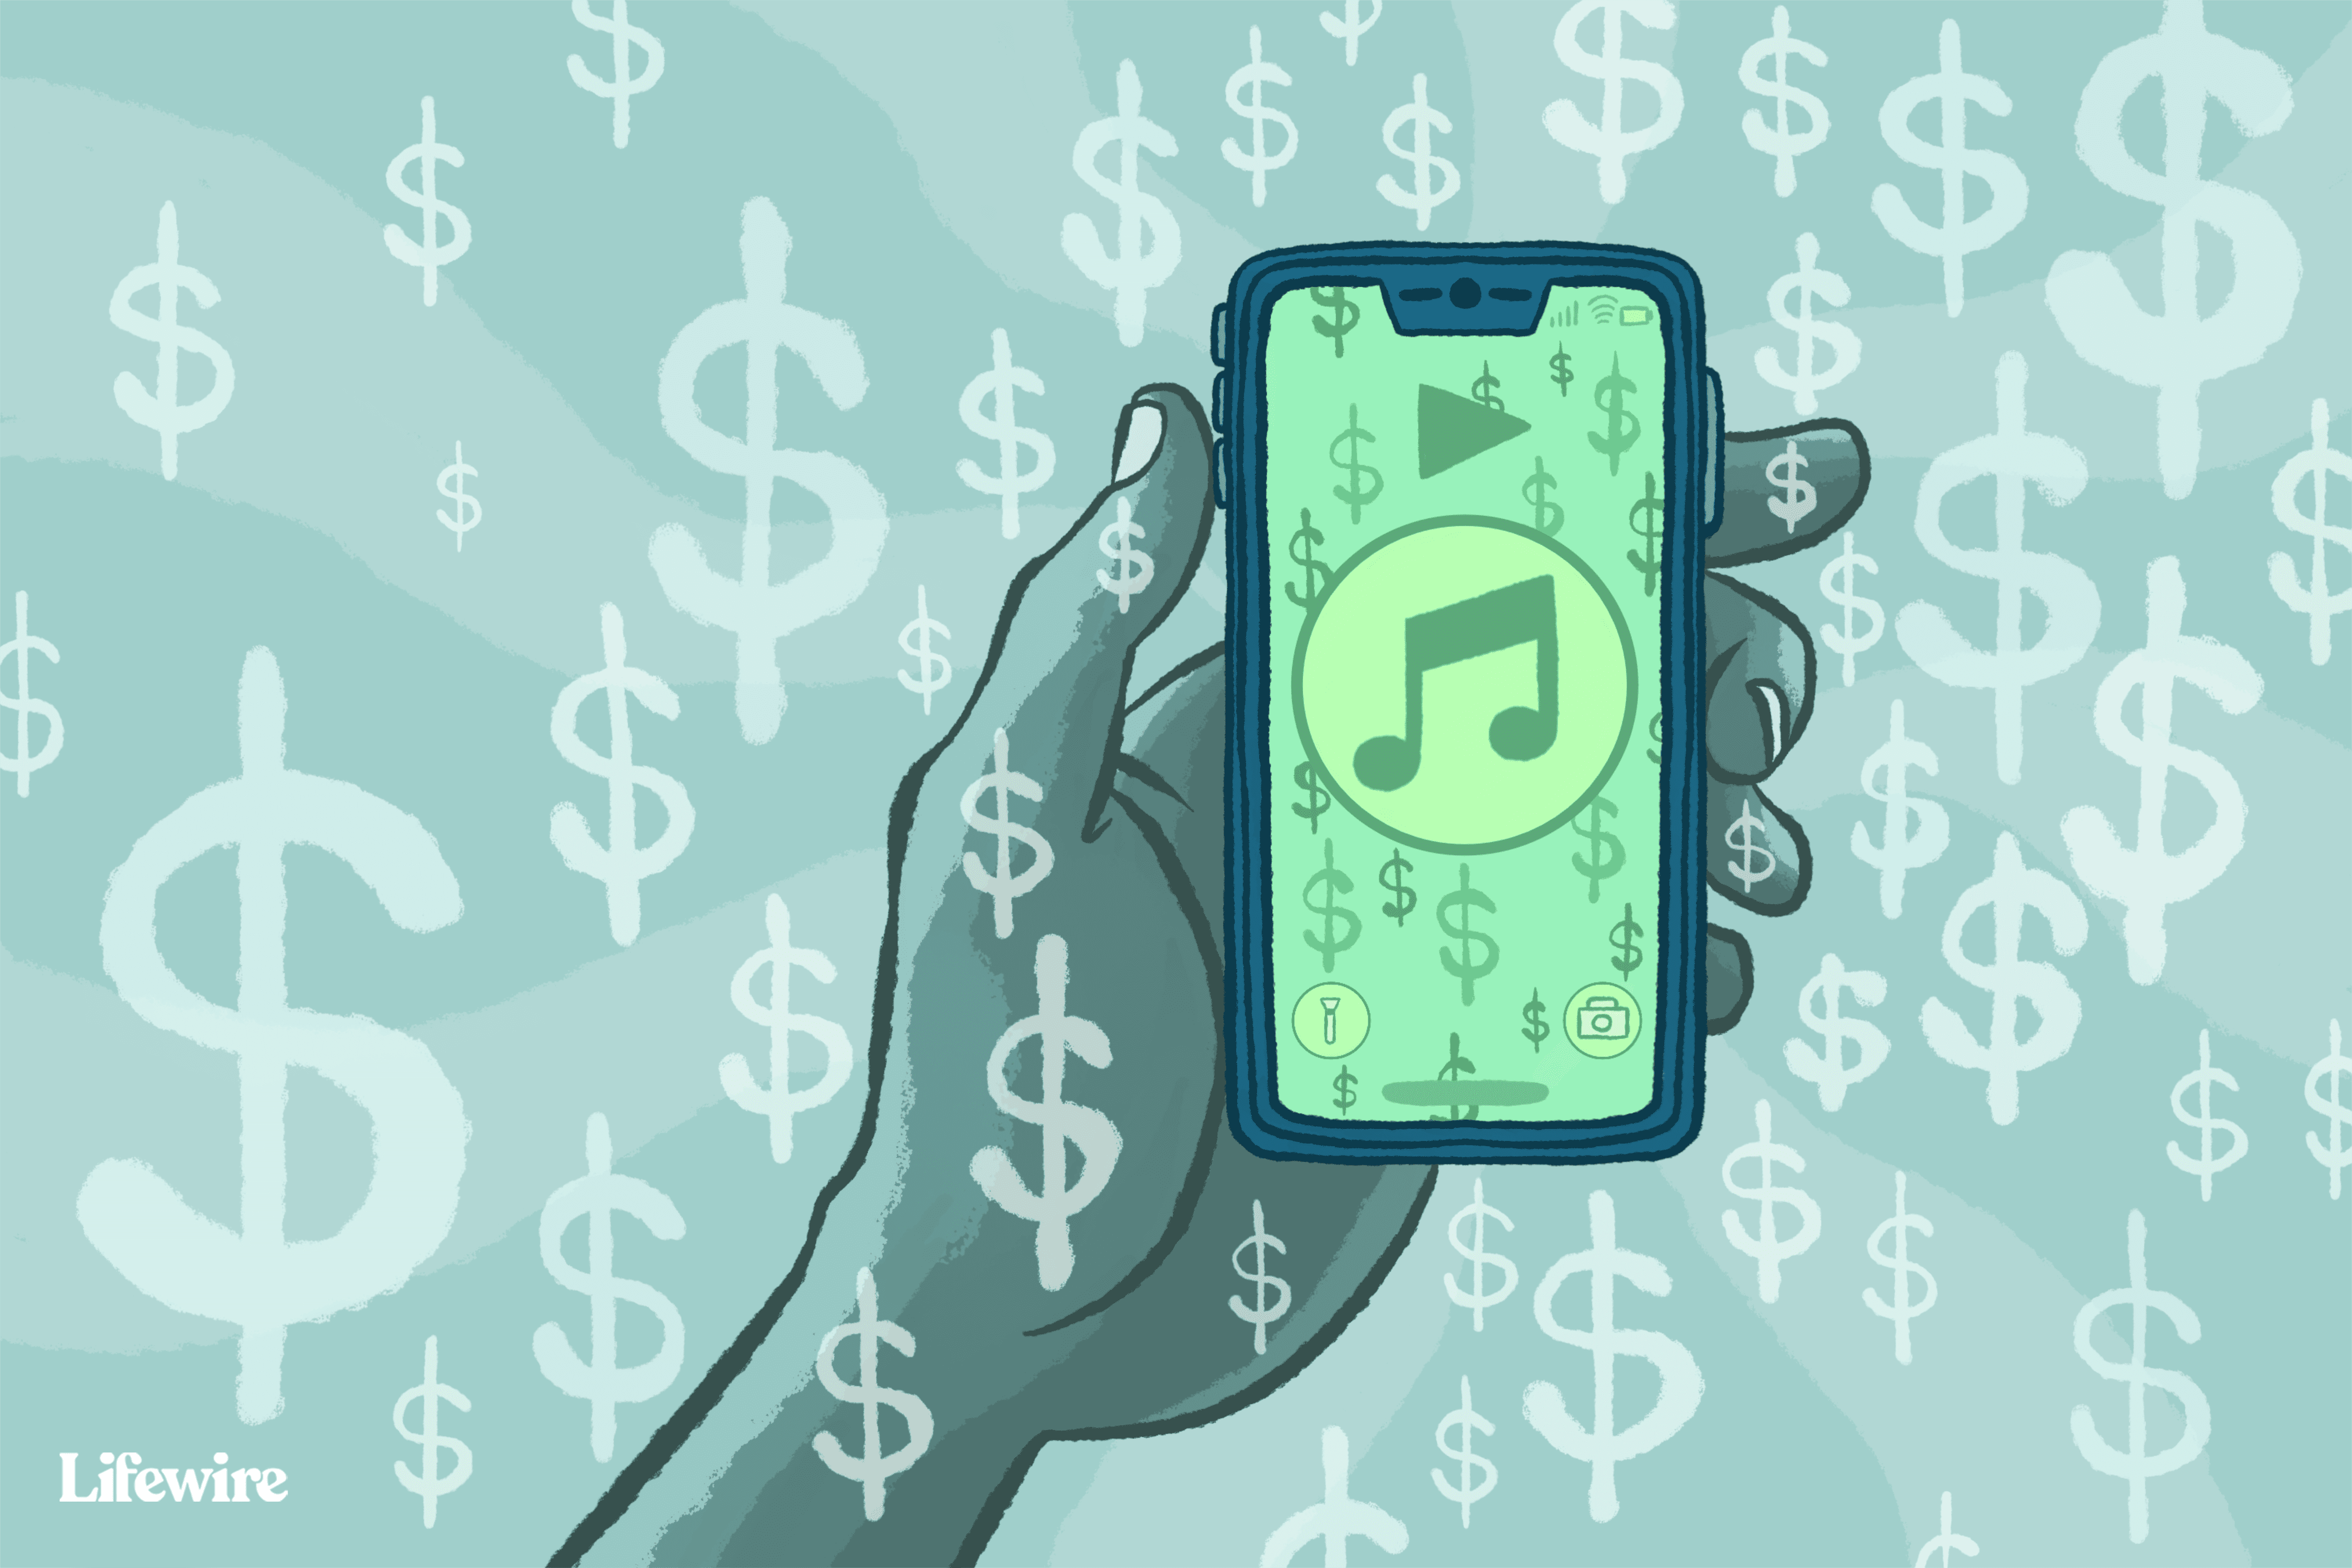 A person holding an iPhone with the iTunes logo on it, dollar signs emanating from it